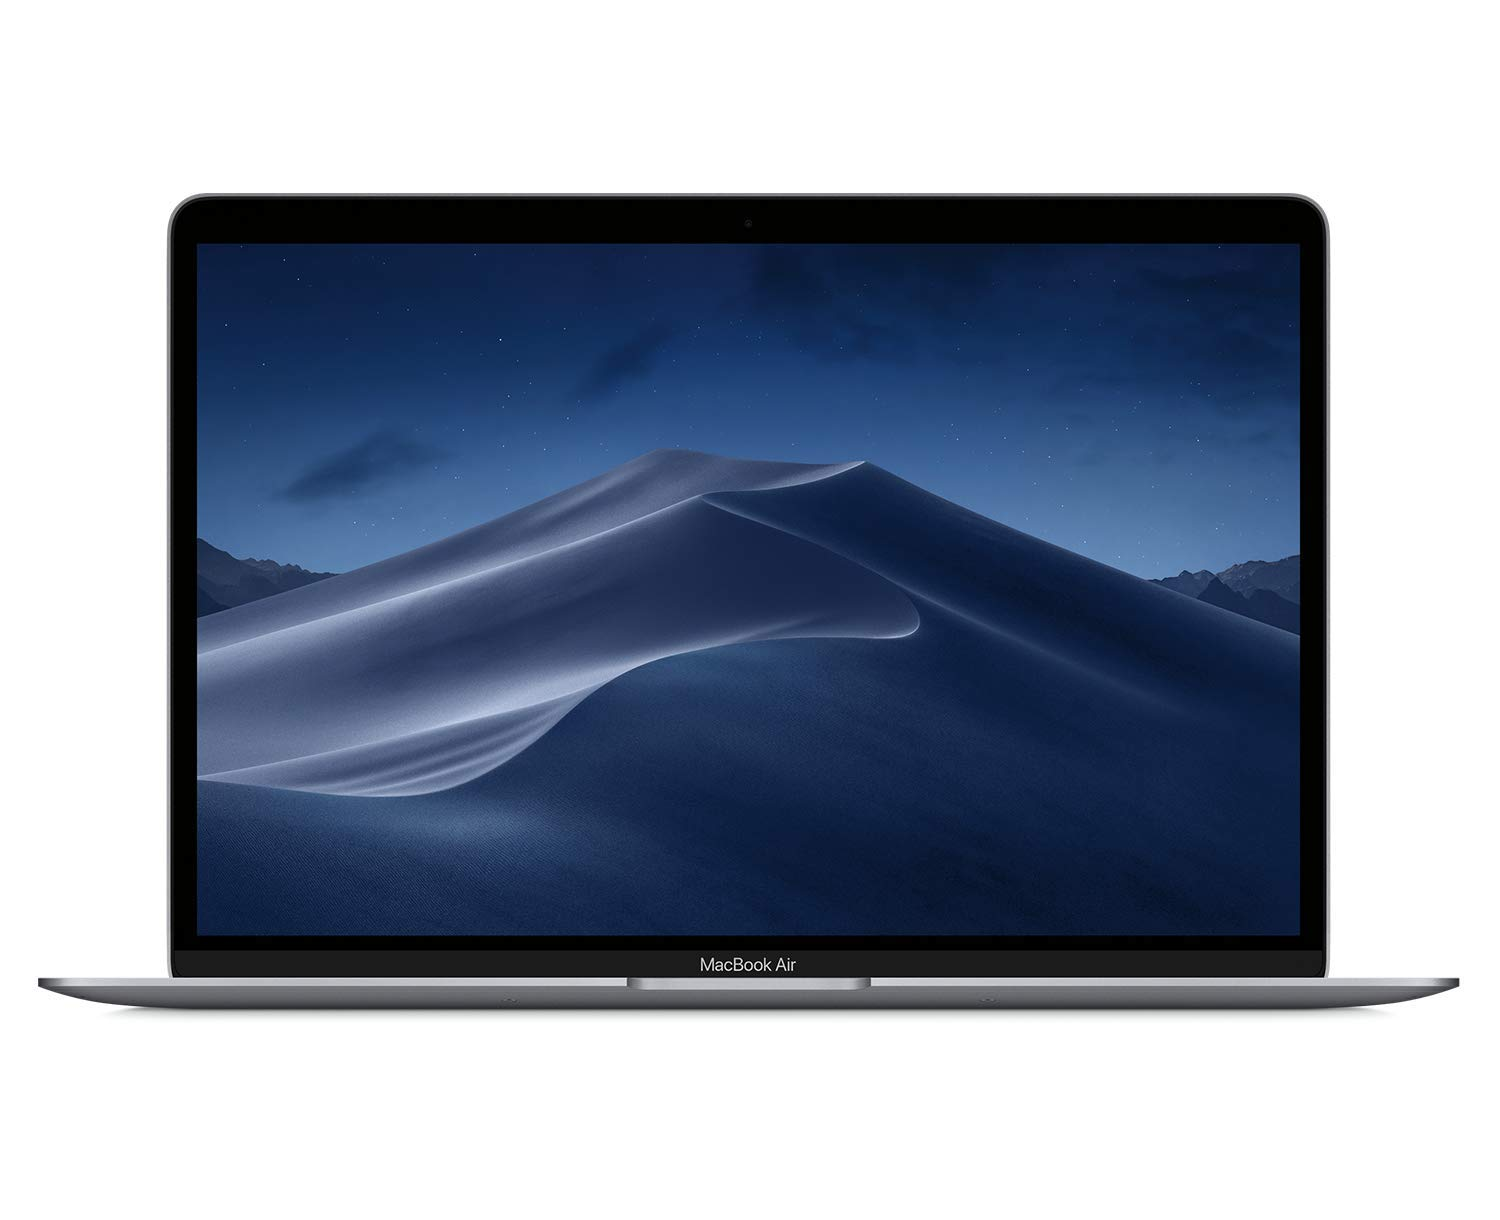 Apple MacBook Air (13-inch Retina display, 1.6GHz dual-core Intel Core i5, 256GB) - Space Gray (Latest Model) by Apple (Image #4)